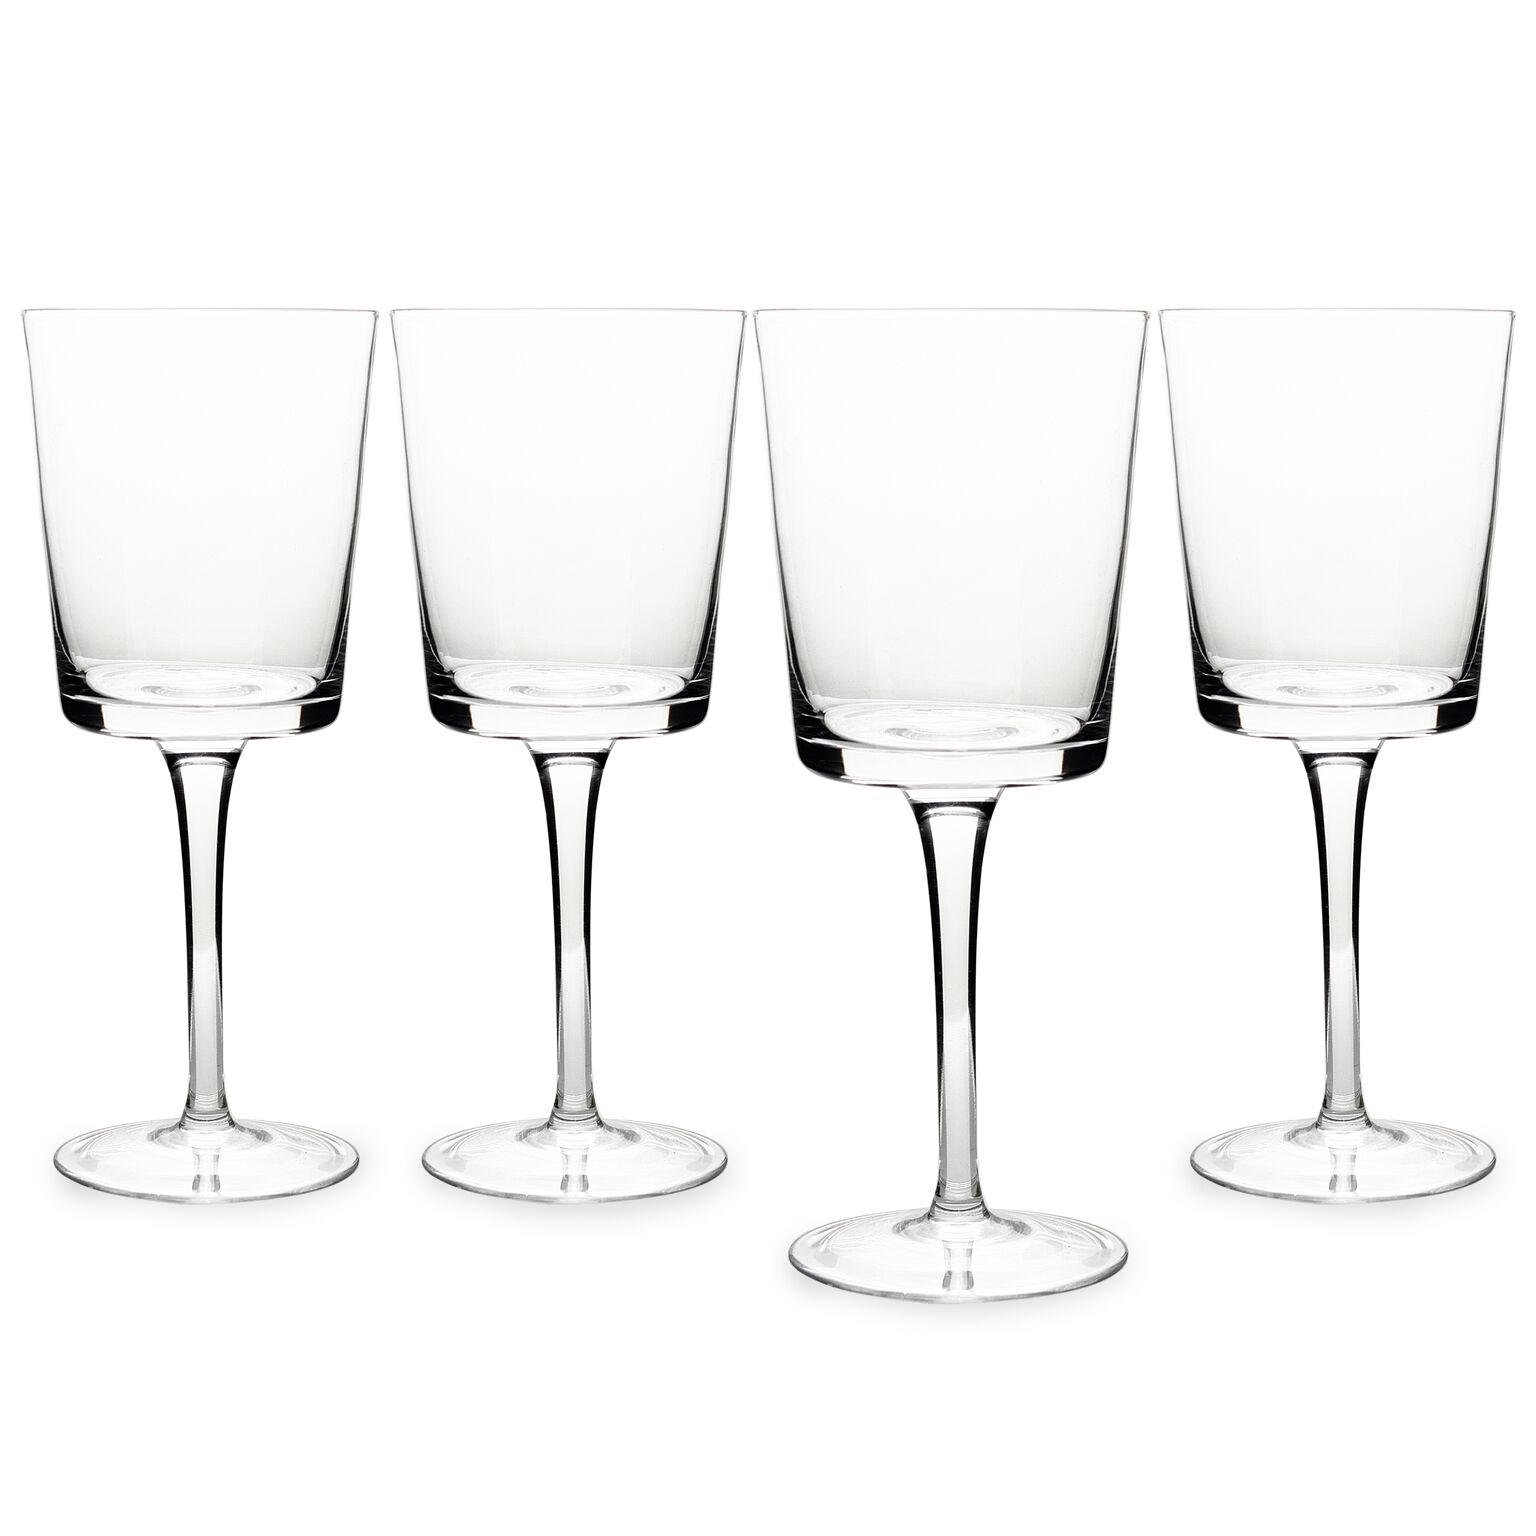 Cathys Concepts 3669-4 12 oz Contemporary Wine Glasses - Clear, Set of 4